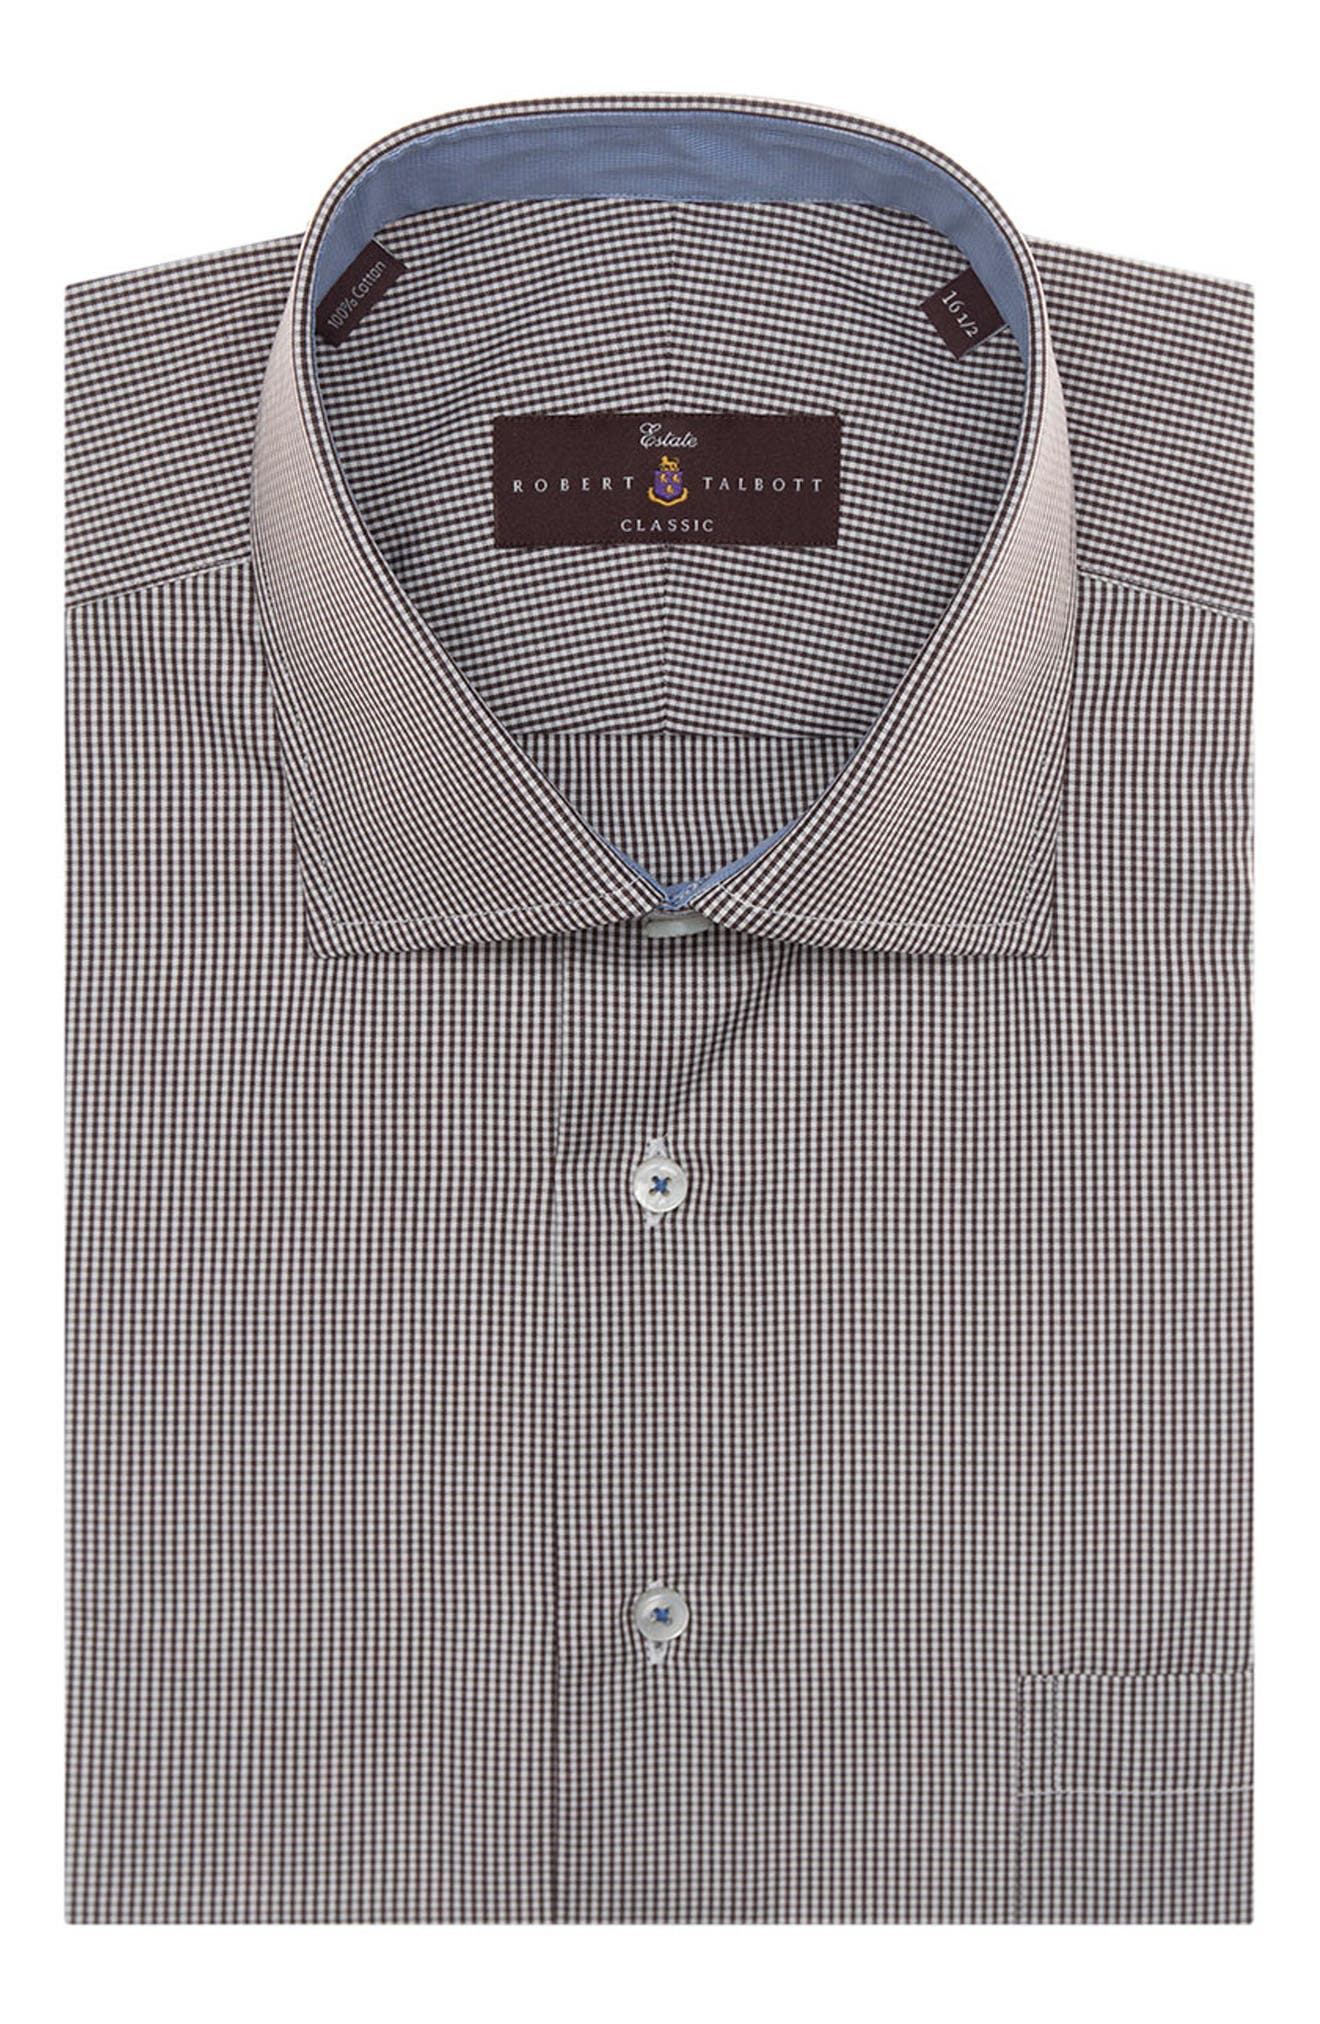 Tailored Fit Check Dress Shirt,                         Main,                         color, 201